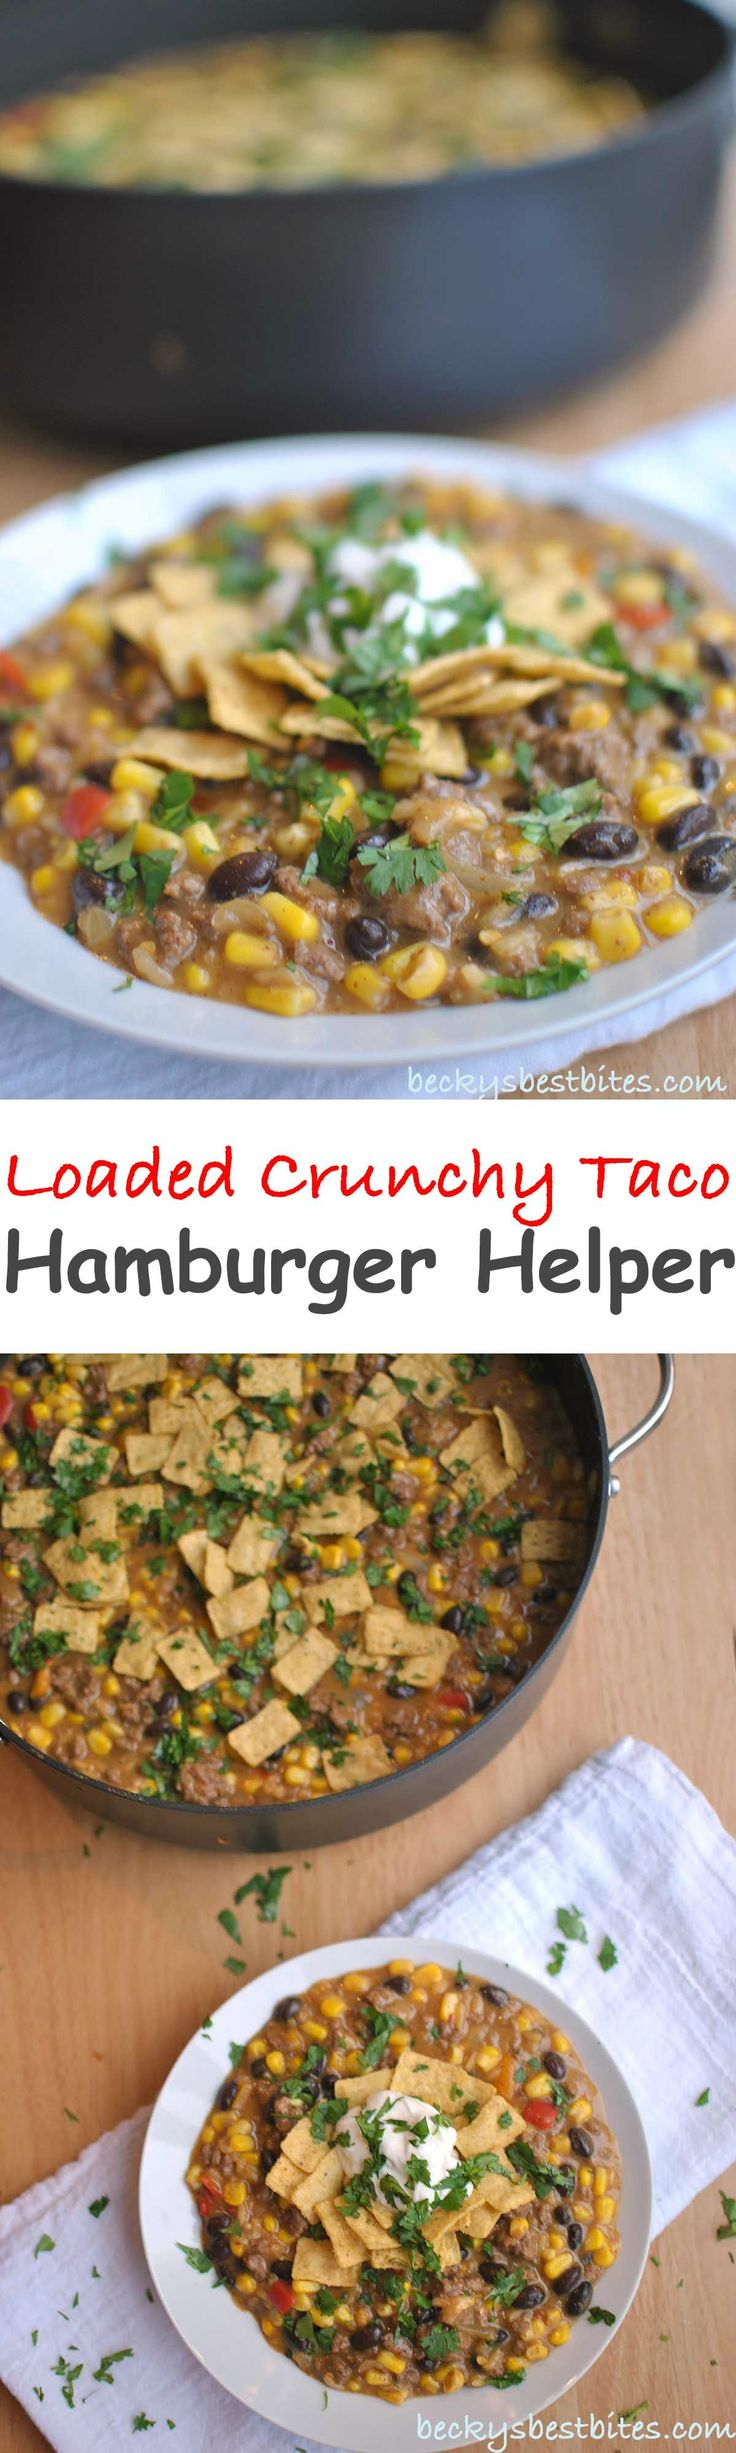 Loaded Crunchy Taco Hamburger Helper Recipe is a quick and easy family meal that provides a great value. A few healthy add-ins stretch the dollar even more.  | Becky's Best Bites #freebeef #helper #ad